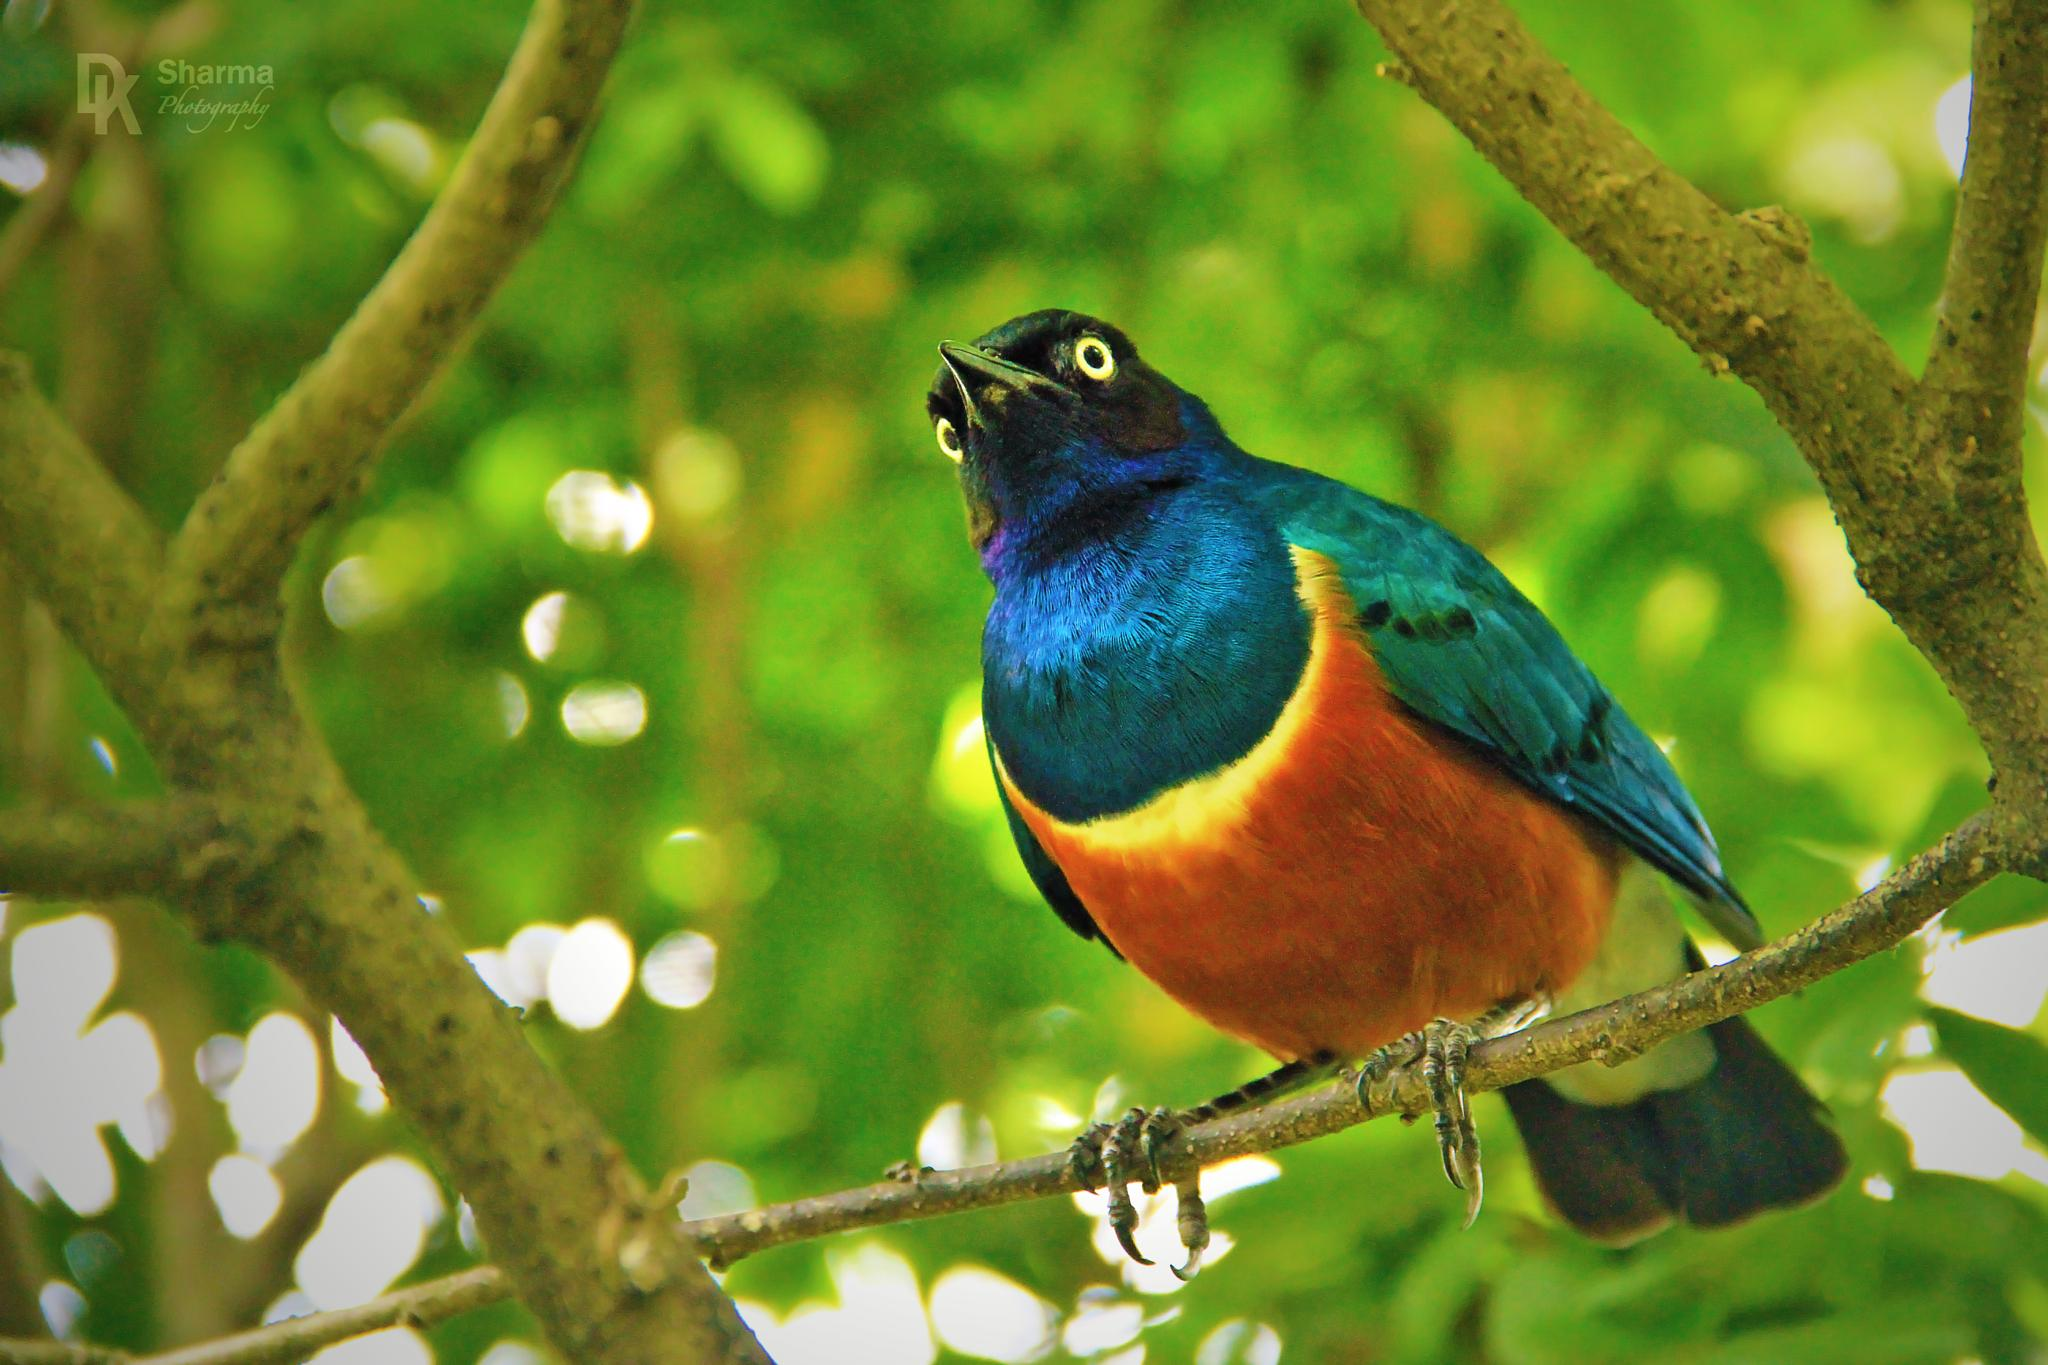 Superb Starling by DK Sharma Photography